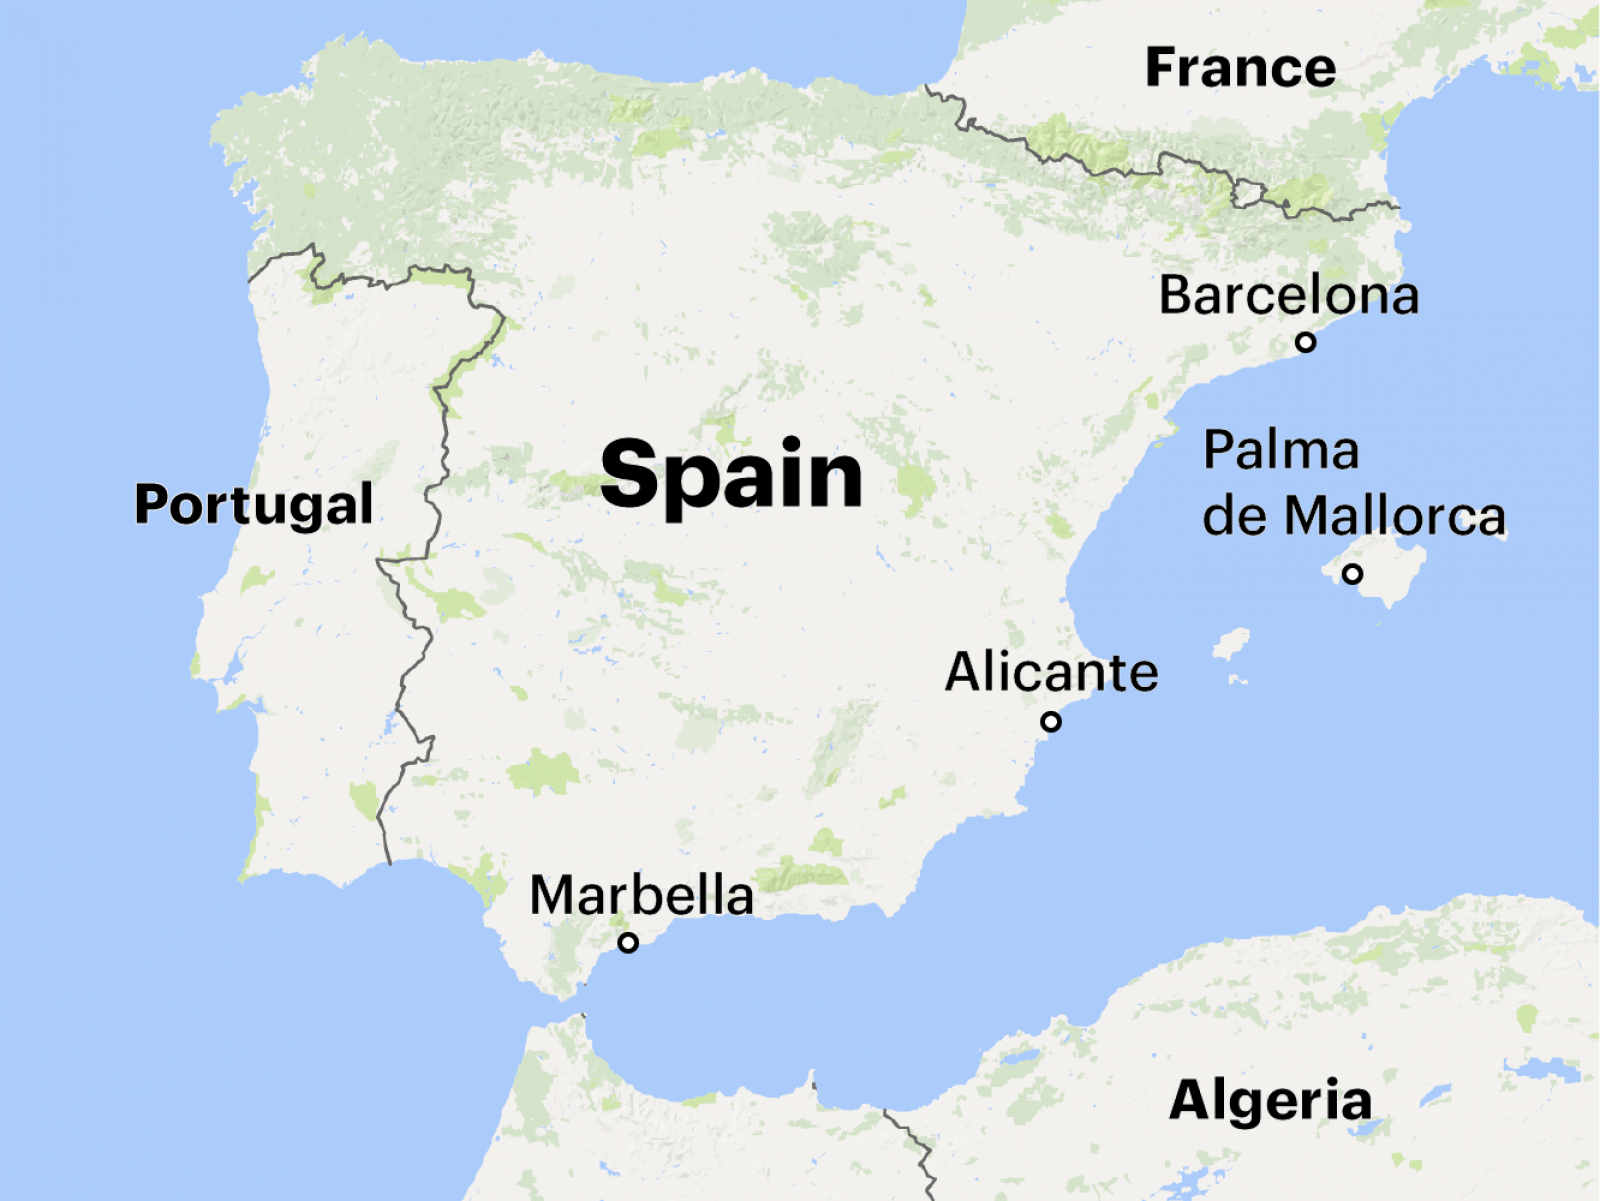 Russian mobsters have based themselves in some of the most beautiful cities on the Spanish coast and been especially aggressive in Barcelona, capital of the Catalonia region. Map data: Google